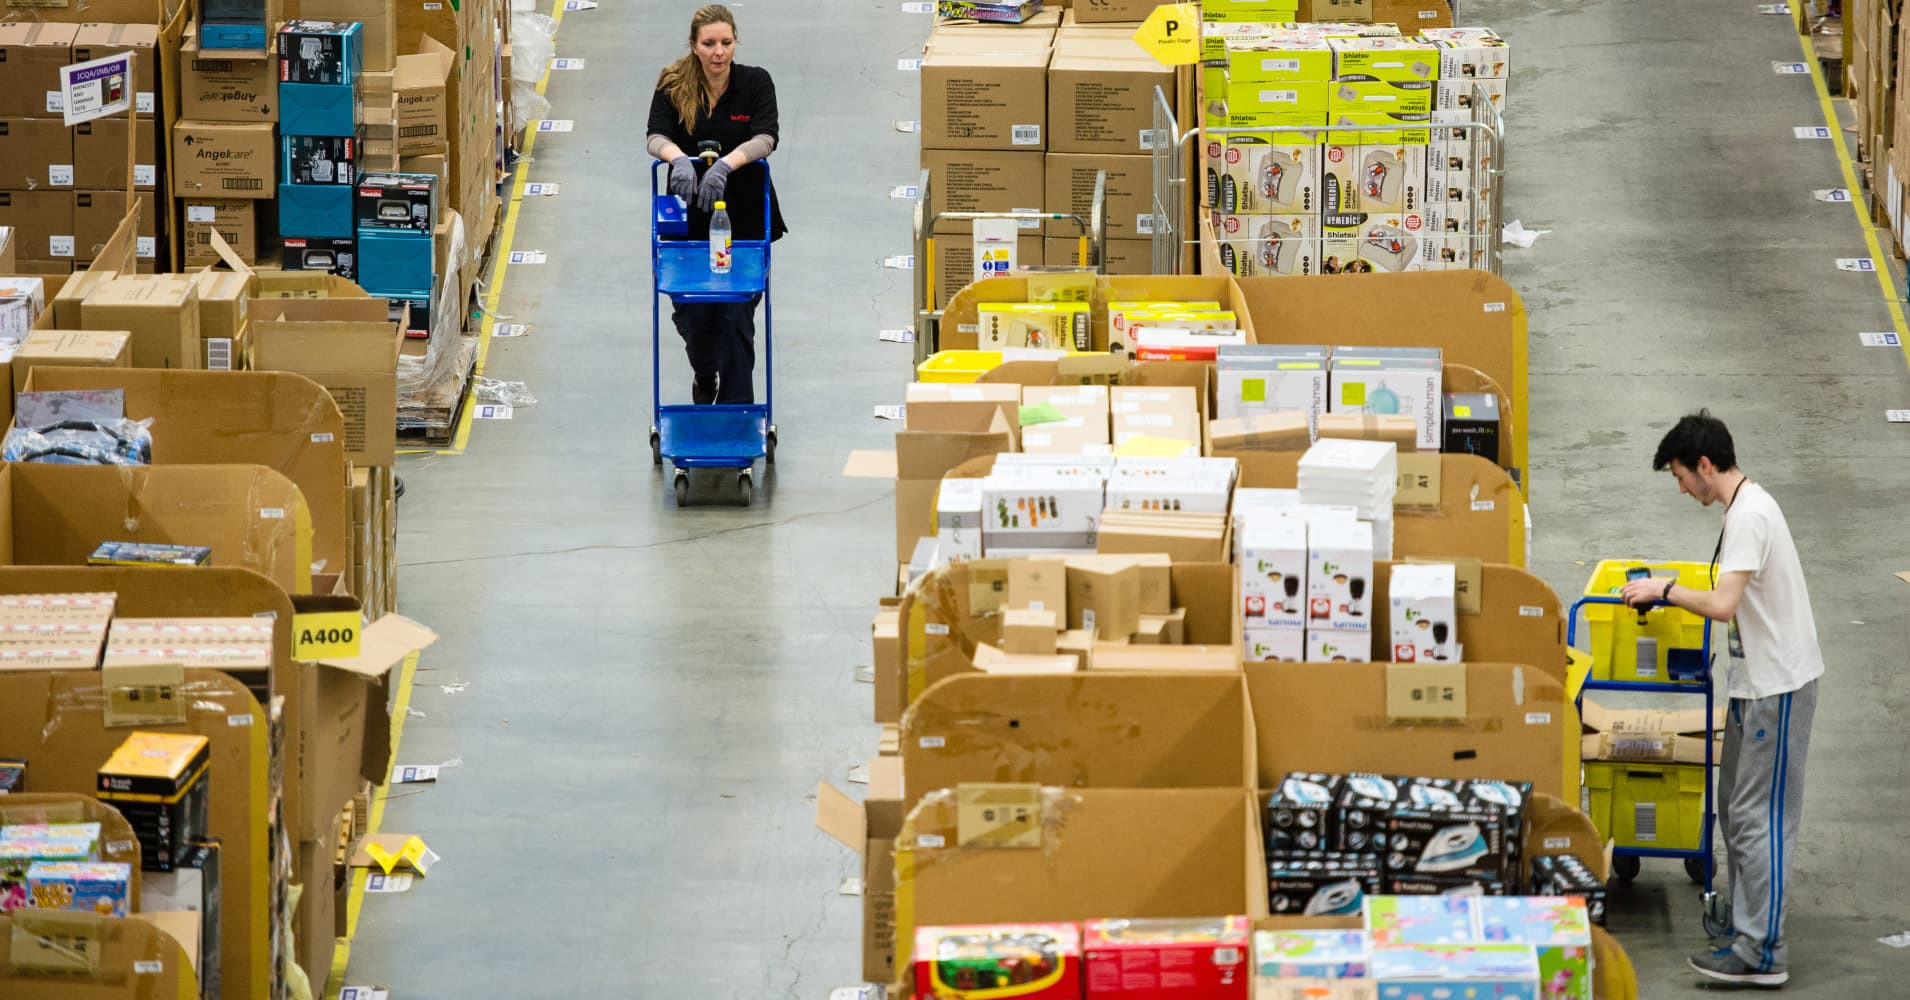 Rival retailers look to steal some of Amazon's Prime Day glory with their own deals